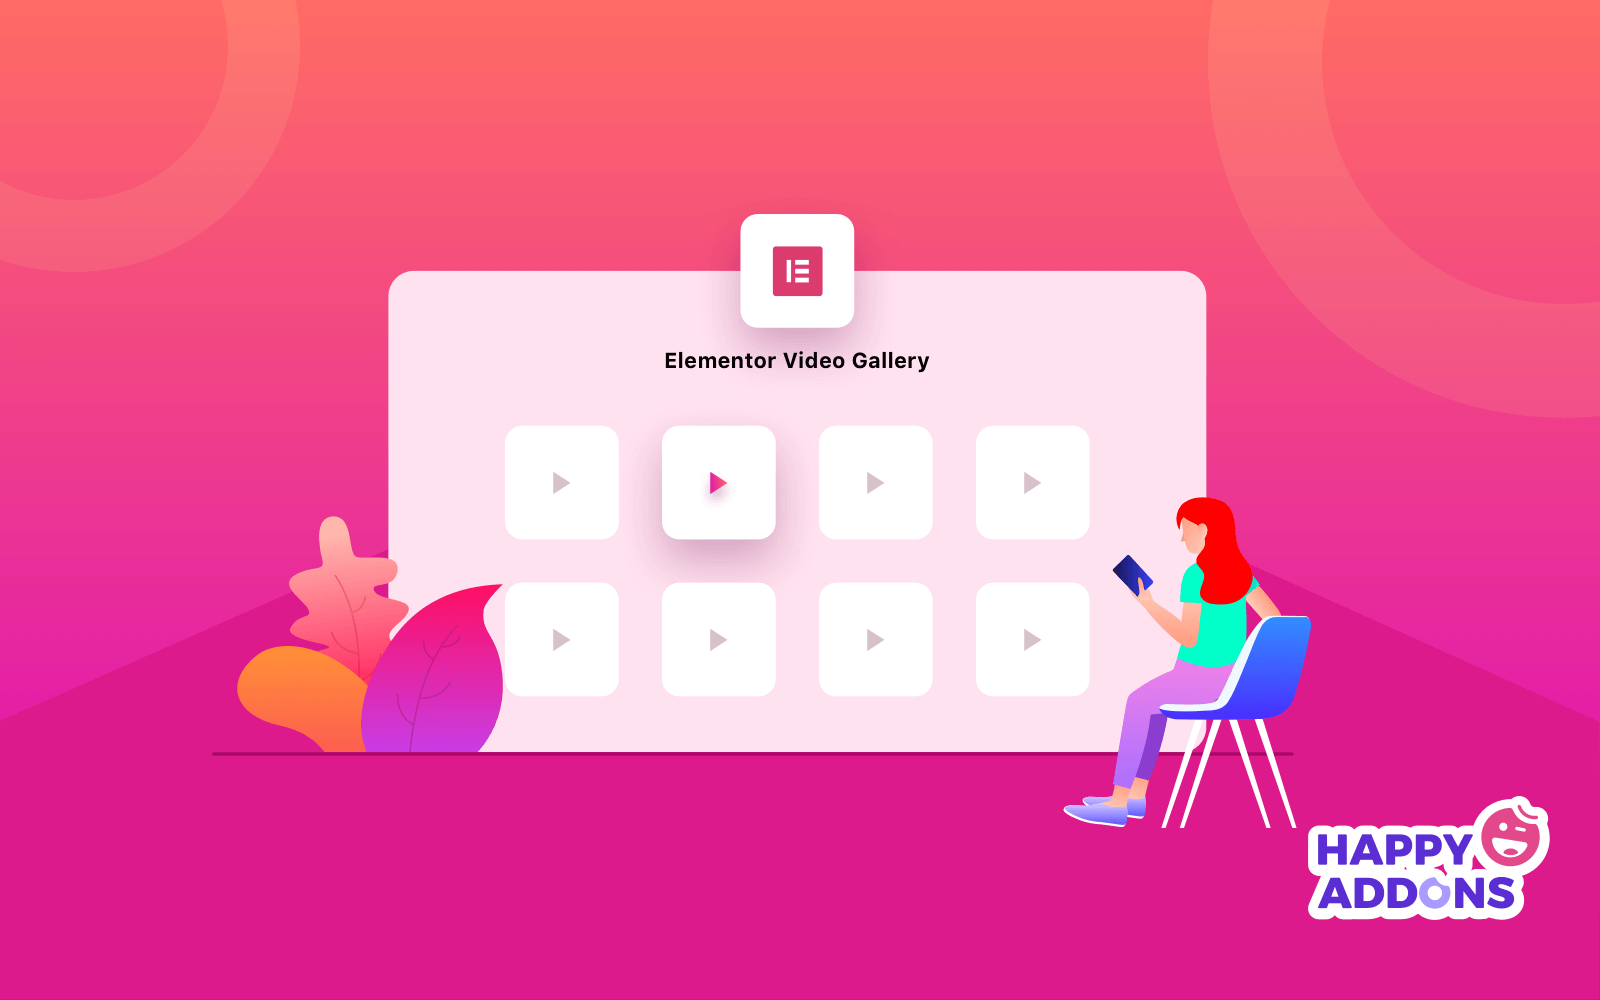 Elementor video gallery